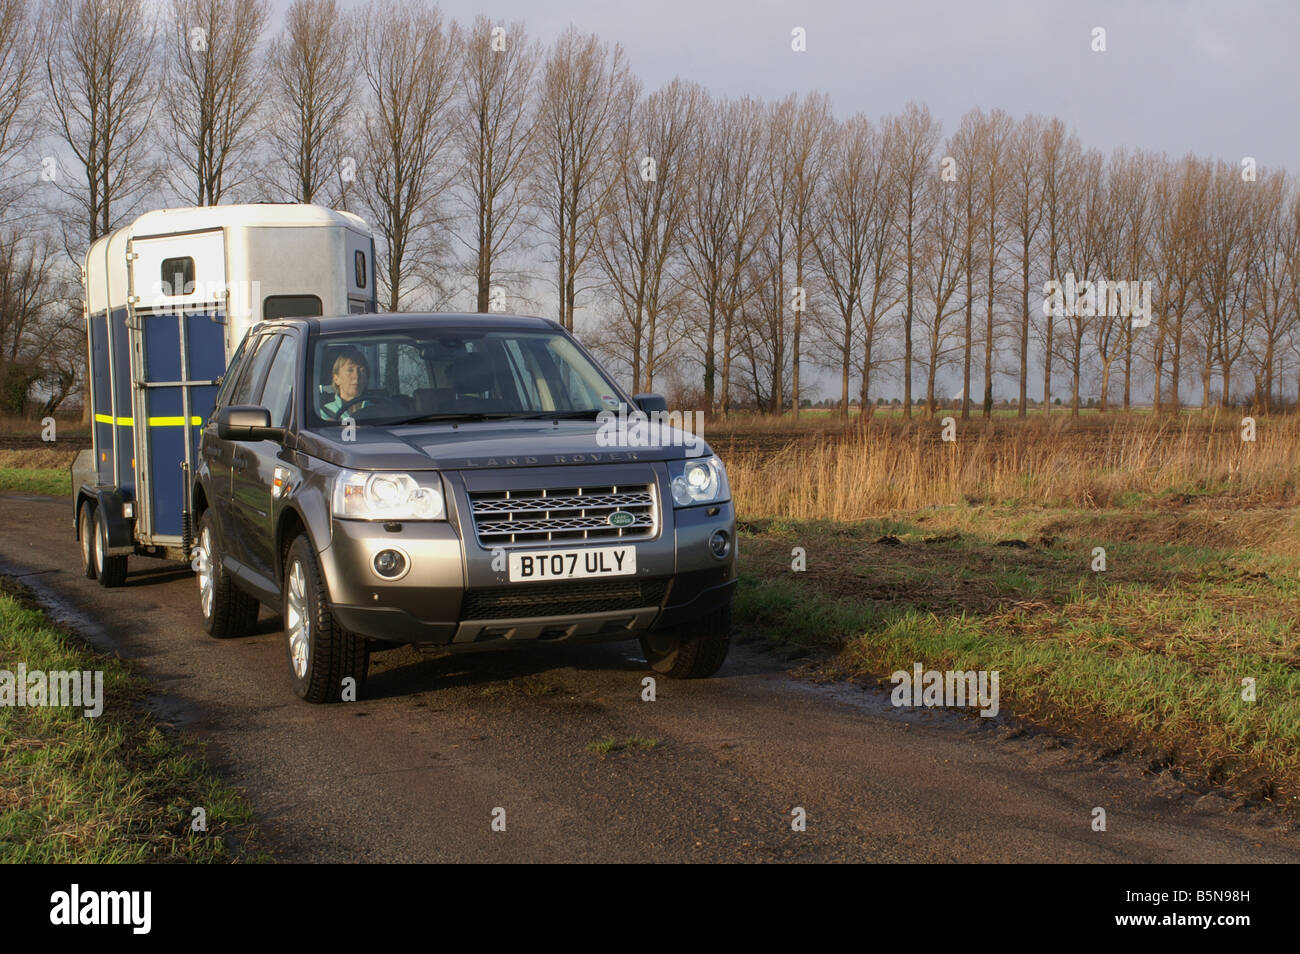 Land Rover Freelander 2 Towing Ifor Williams Horse Trailer